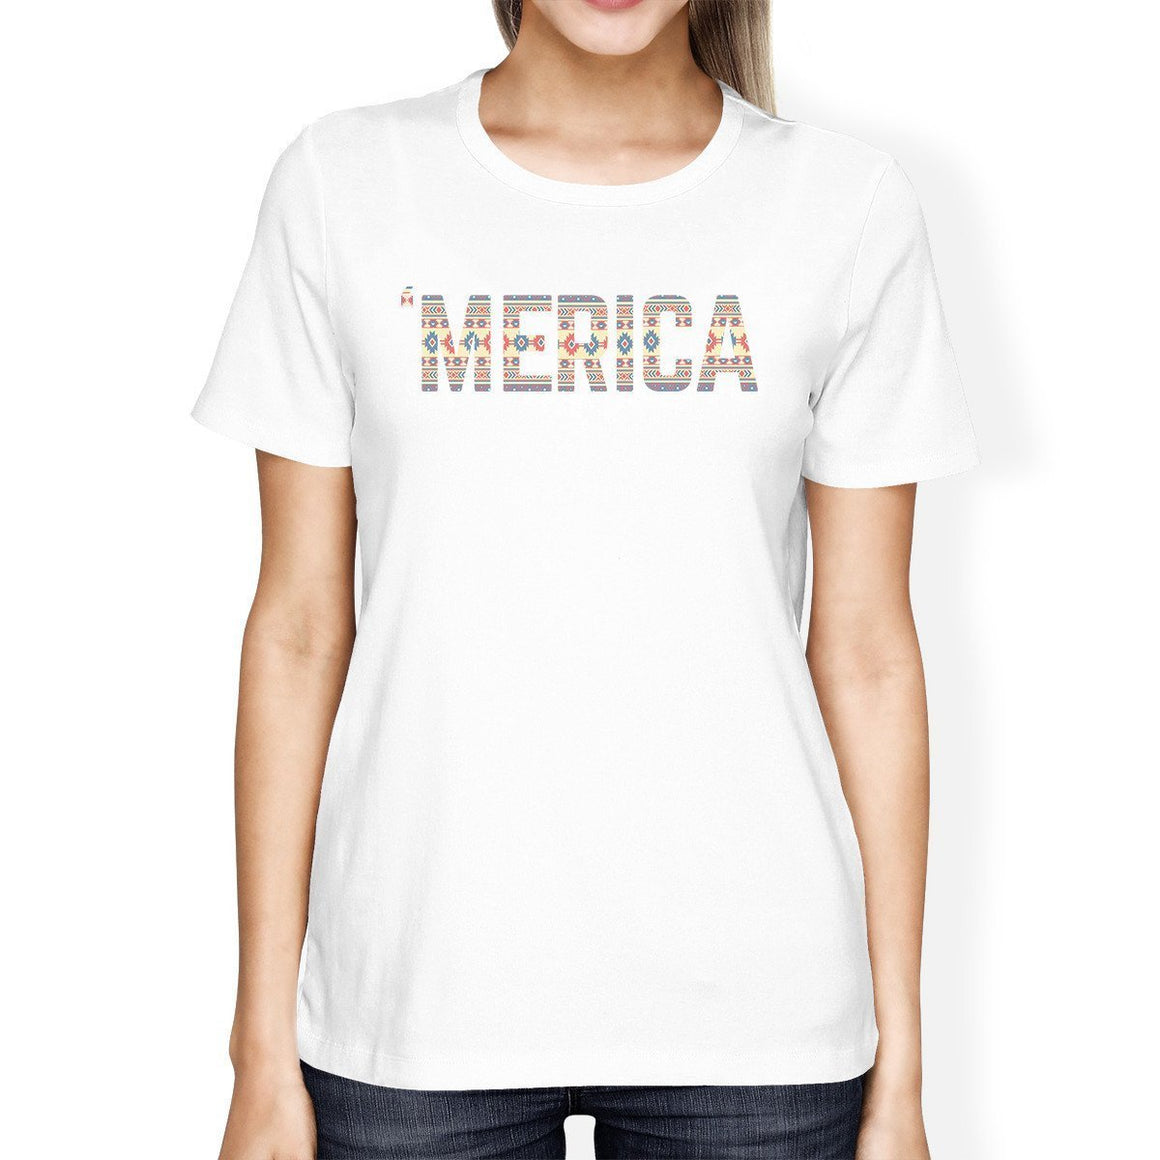 'Merica Womens White T-Shirt Unique Graphic Tee For Fourth Of July